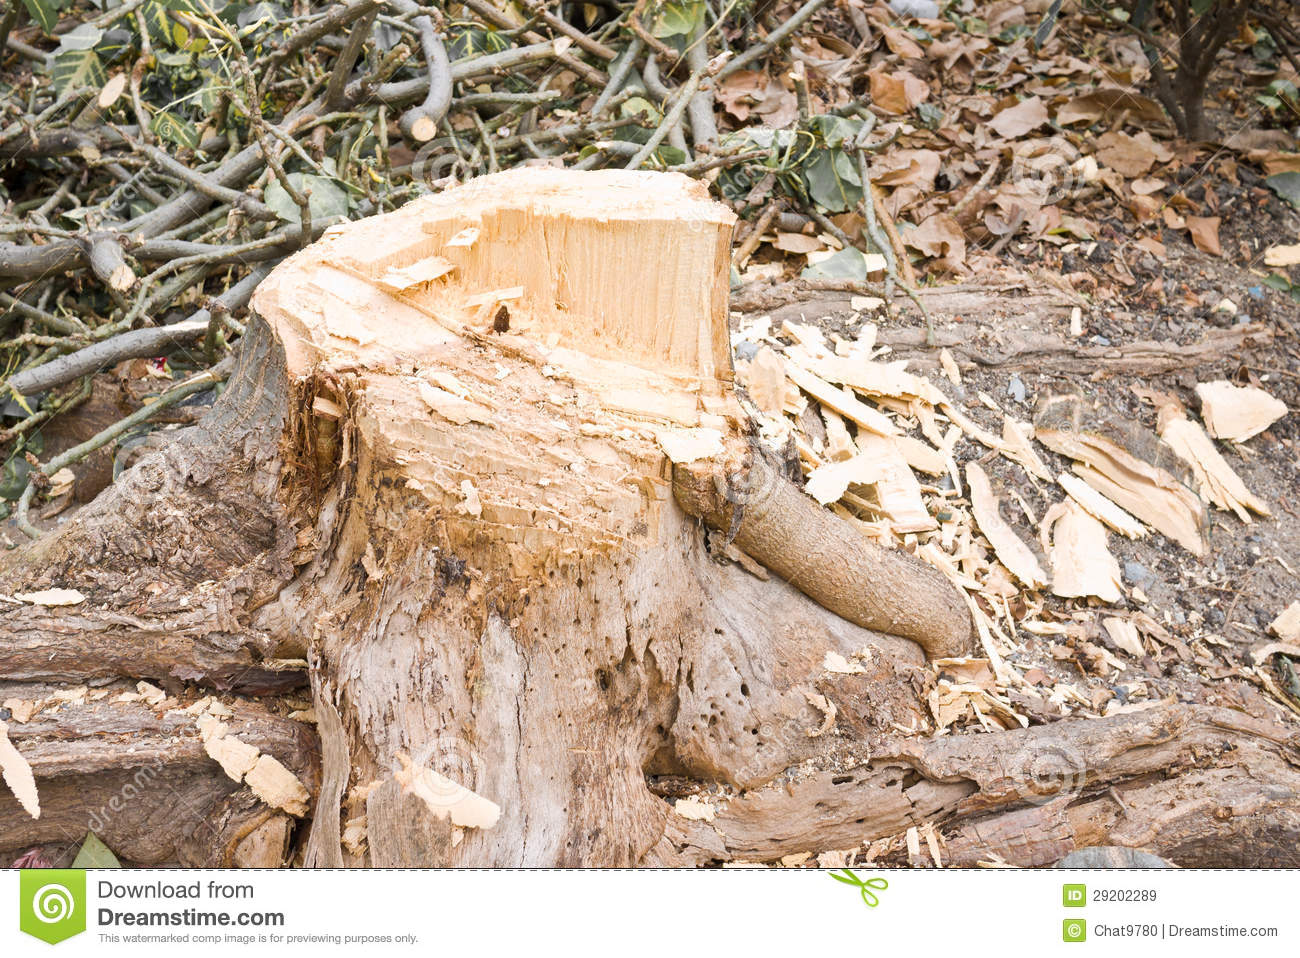 Fotos De Stock Chat9780: Cut Tree Royalty Free Stock Images